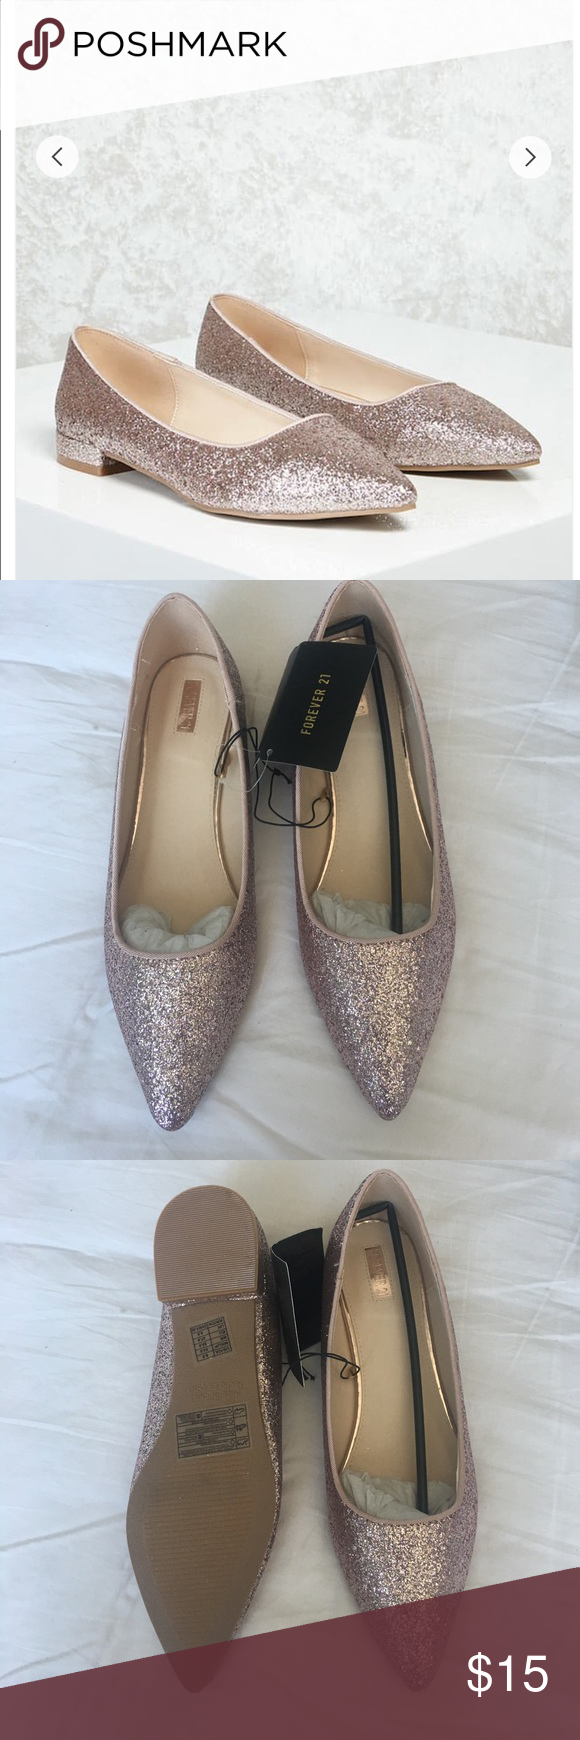 30d1e06271e Metallic Rose Gold Flats Brand New with tags. Bought and never worn. Brand  new with tags. Size 6.5 I am also selling a pair in silver as well. Forever  21 ...